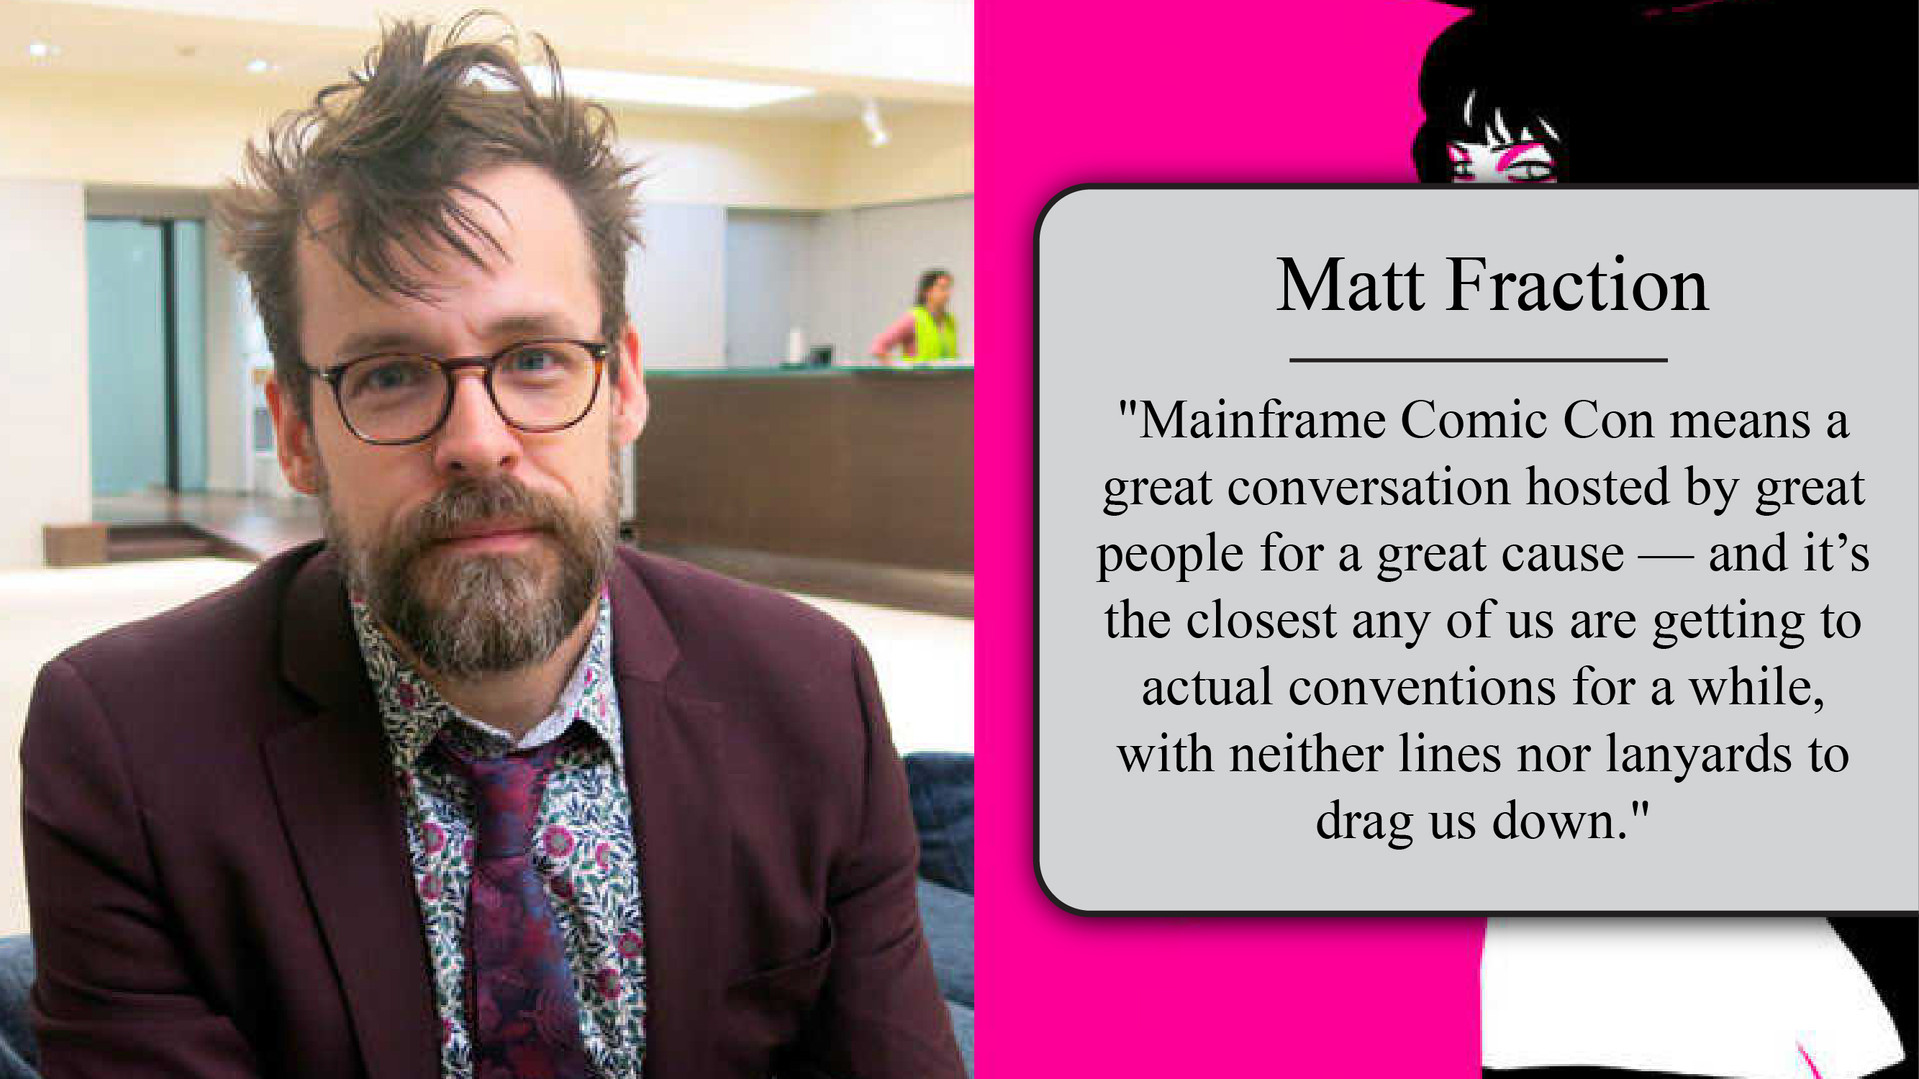 Matt Fraction testimonial.jpg